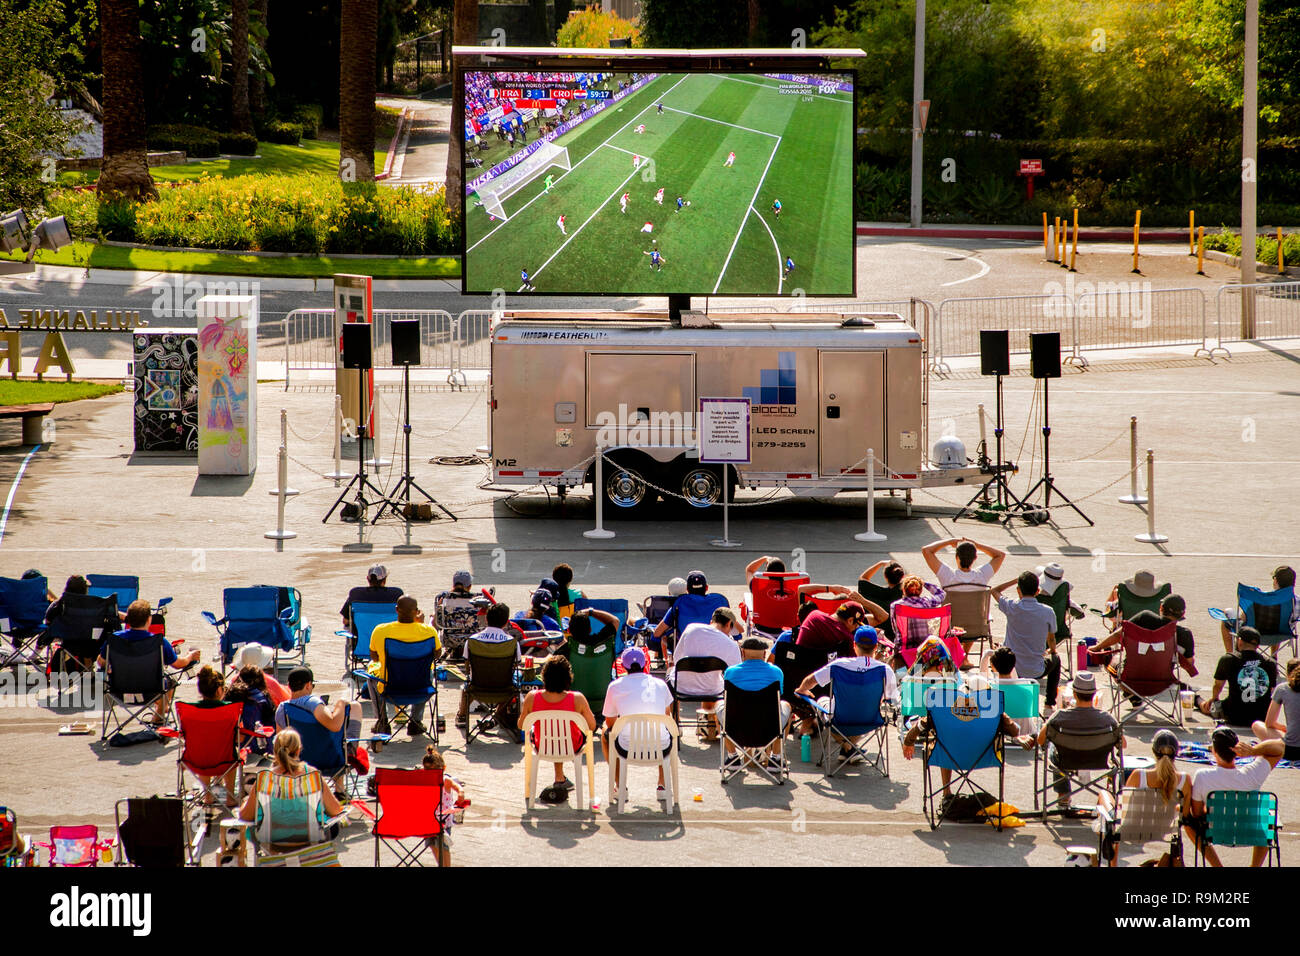 A daytime audience watches a World Cup soccer game on a giant outdoor television screen in Costa Mesa, CA. Stock Photo